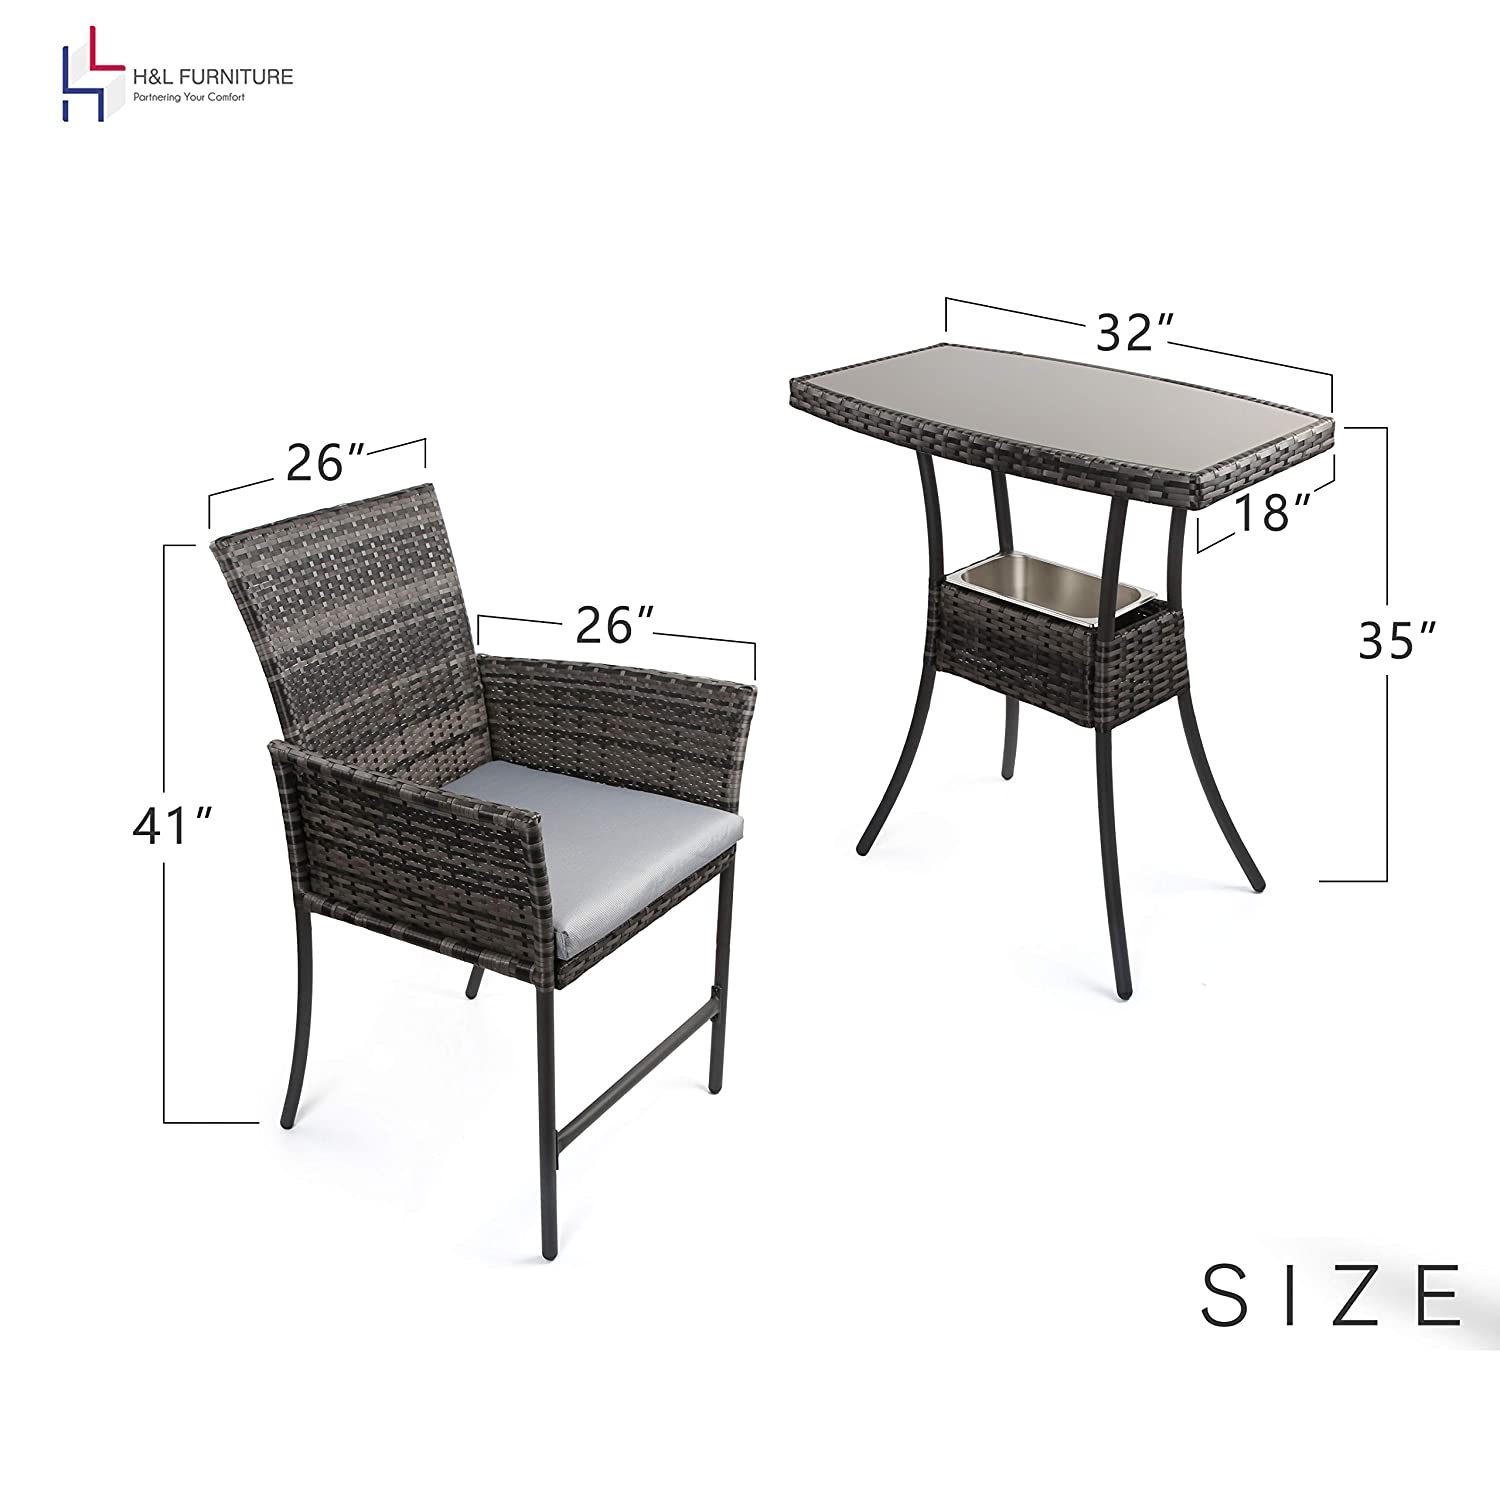 HL Patio Outdoor 3PCS Wicker Bistro Bar Set with Ice Bucket Gray PE Rattan Furniture – Two Chairs with Tempered Glass Coffee Table Gray Cushion ,1 Year Warranty